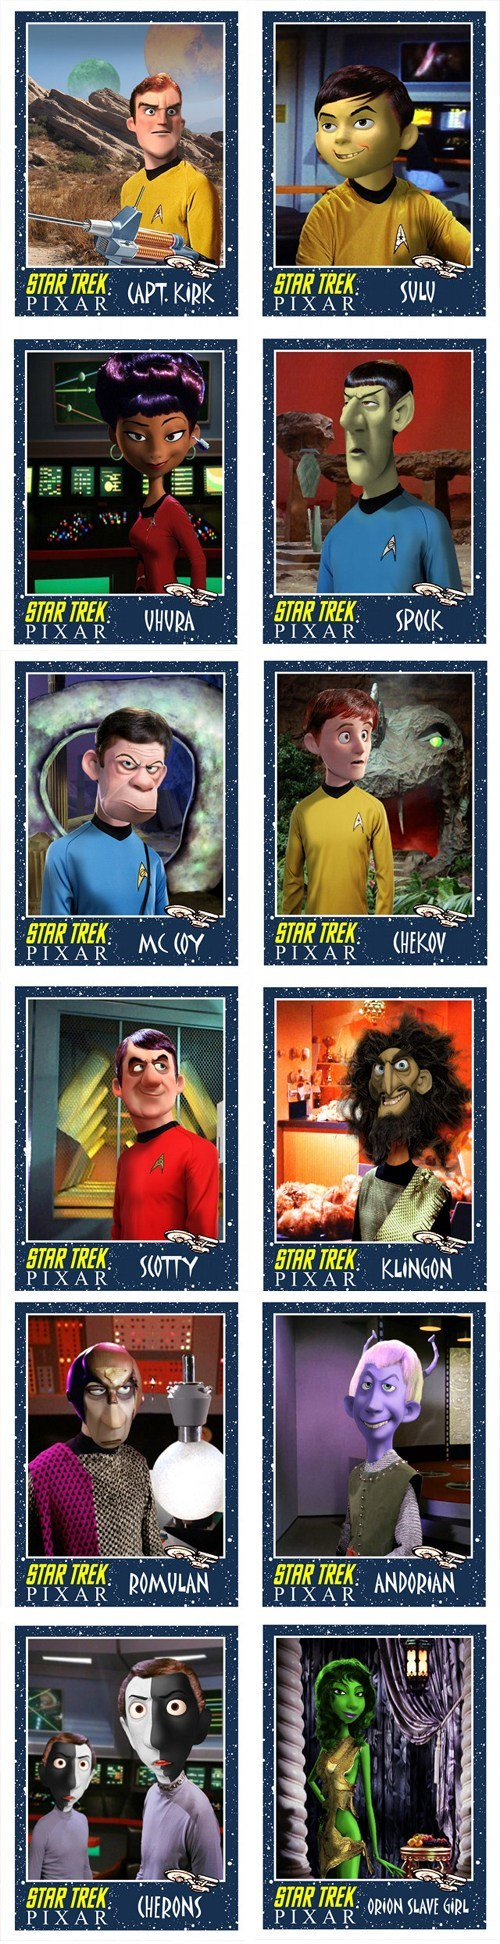 Captain Kirk,Fan Art,Star Trek,mashups,McCoy,Spock,pixar,sulu,uhura,scotty